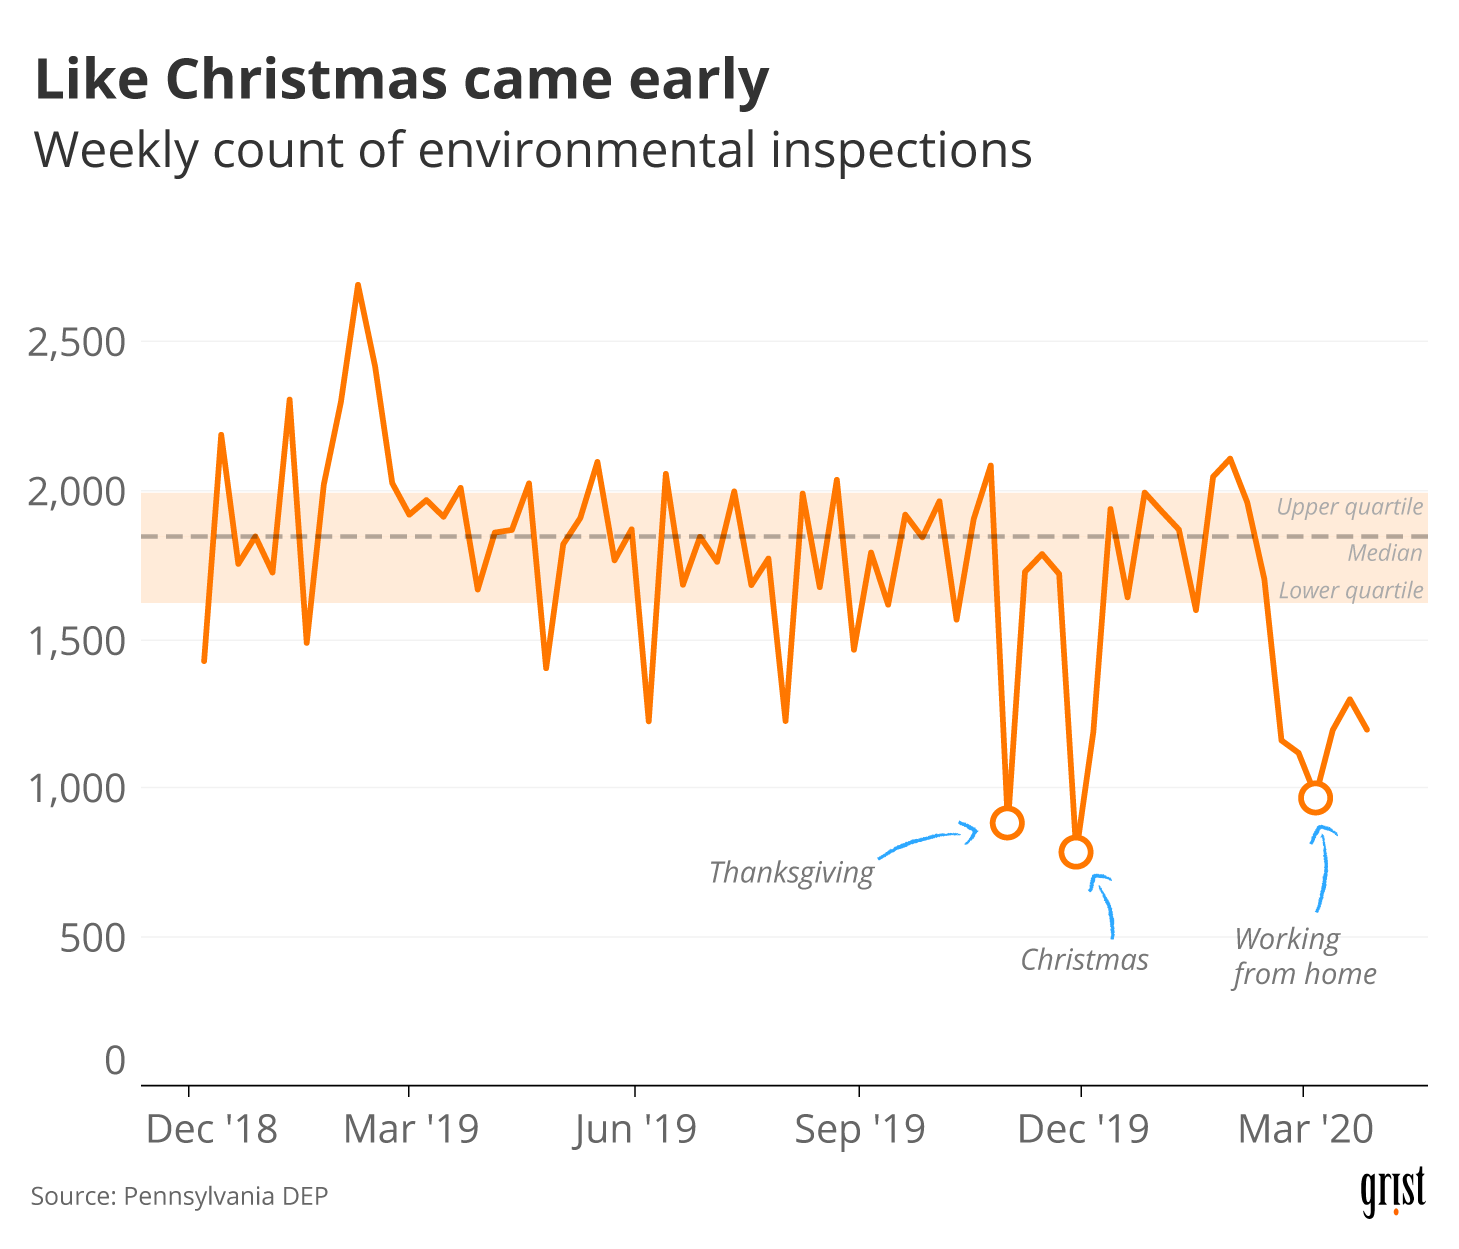 A line chart showing environmental inspections by the Pennsylvania Department of Environmental Protection between 2019 and 2020. In March 2020, inspections dropped to their lowest level since Christmas 2019.